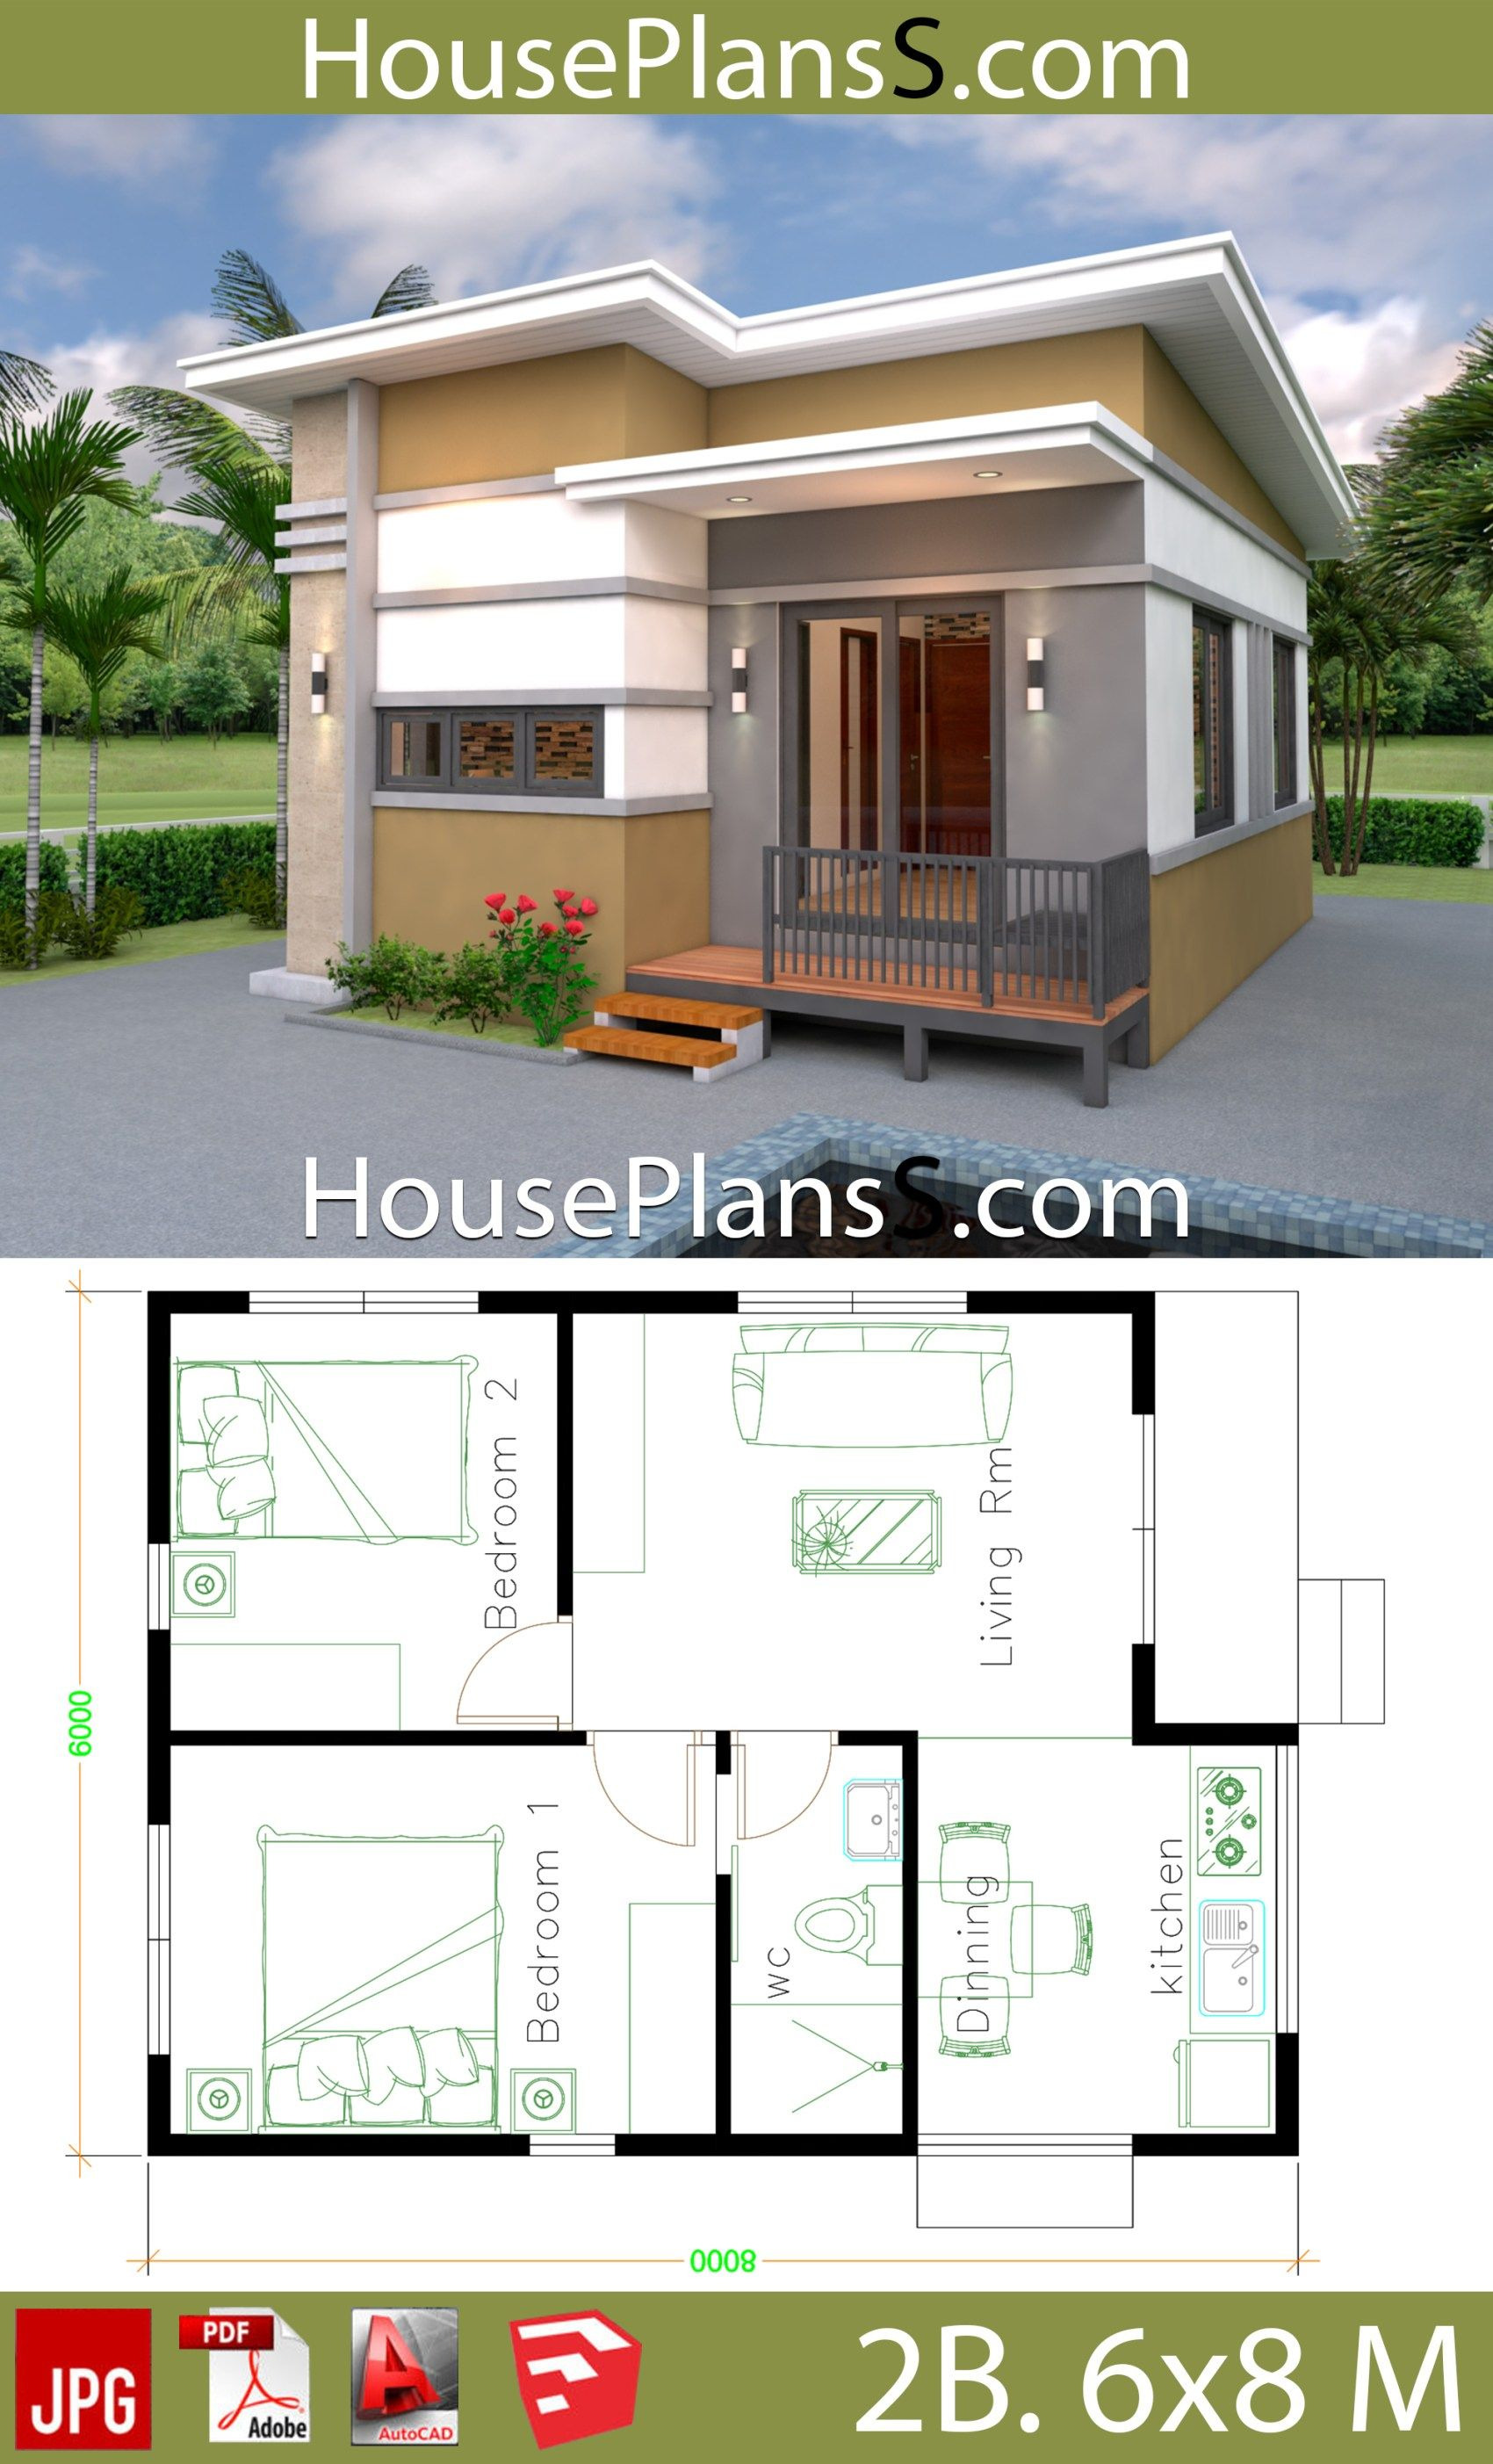 Simple 2 Bedroom House Plans Best Of Small House Design Plans 6x8 with 2 Bedrooms